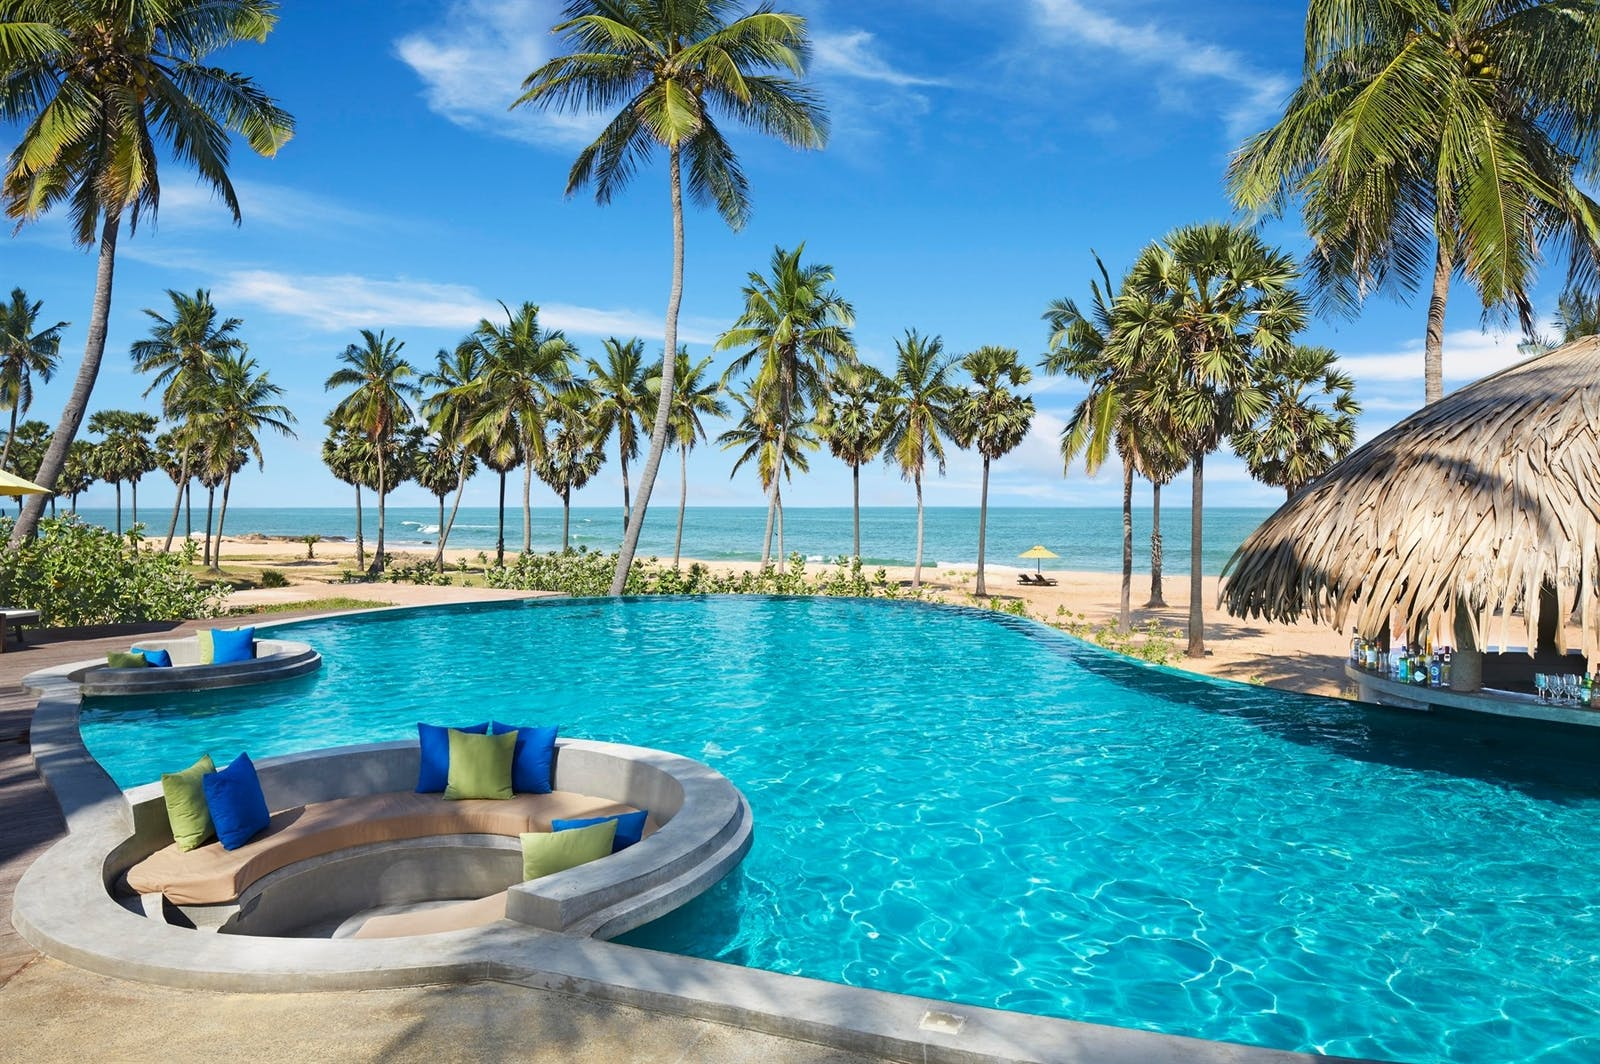 Pool Bar, Jetwing Surf, East Coast Beaches, Sri Lanka